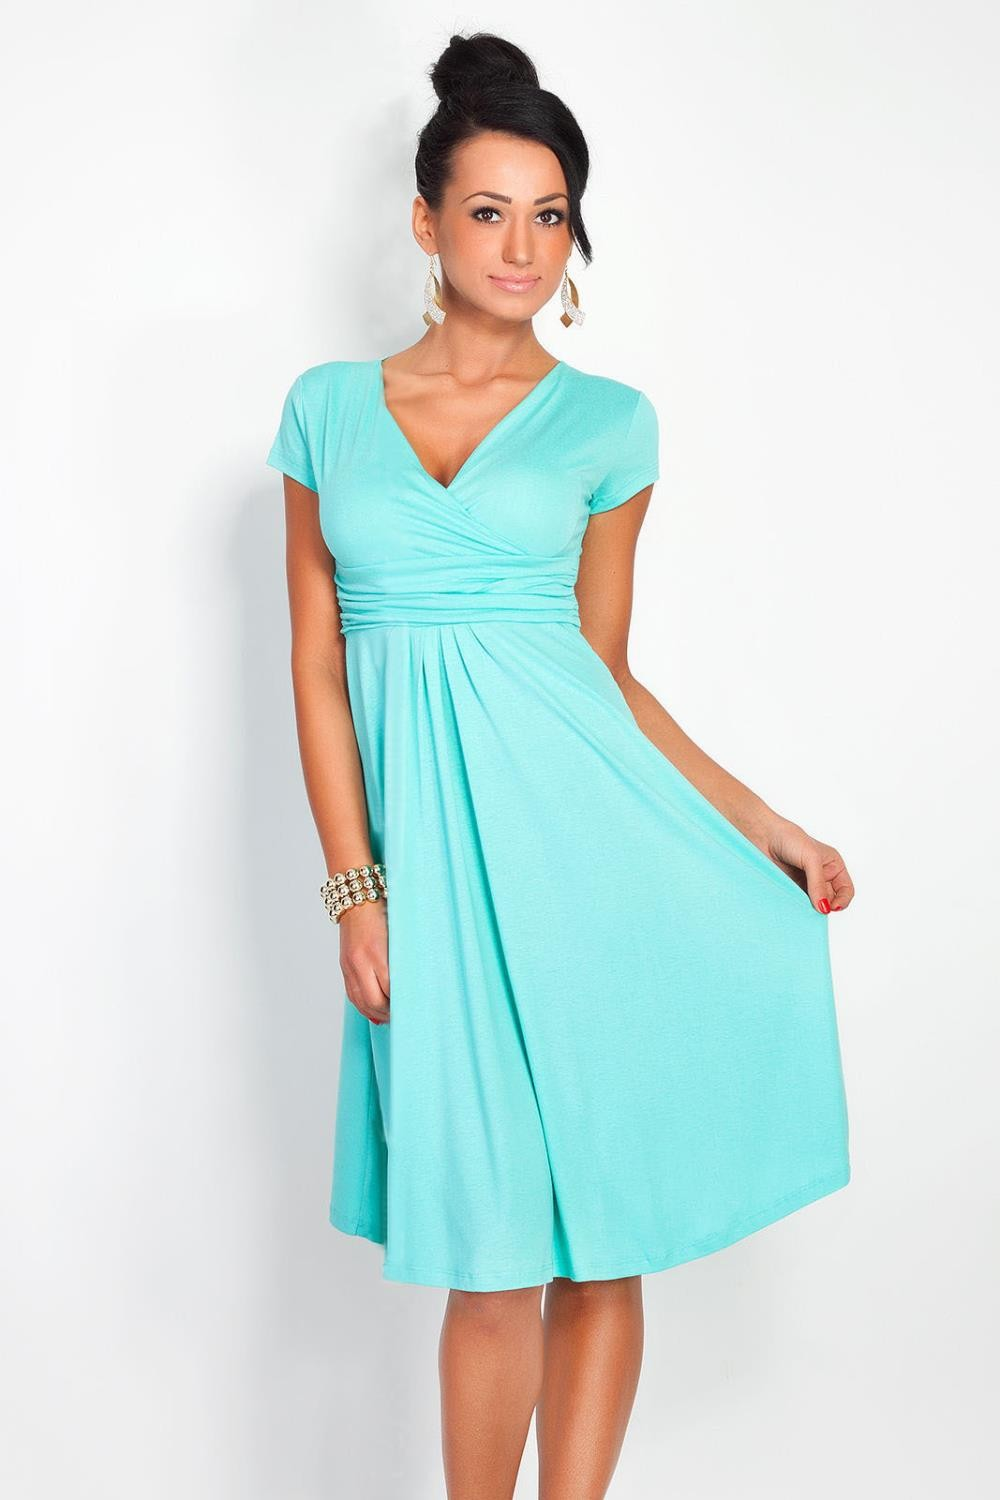 Buy women's dresses with cheap prices everyday on dirtyinstalzonevx6.ga Find discount ladies dress online in the latest, trending styles to fit your look. Dresses for fashionable women, just enjoy it!